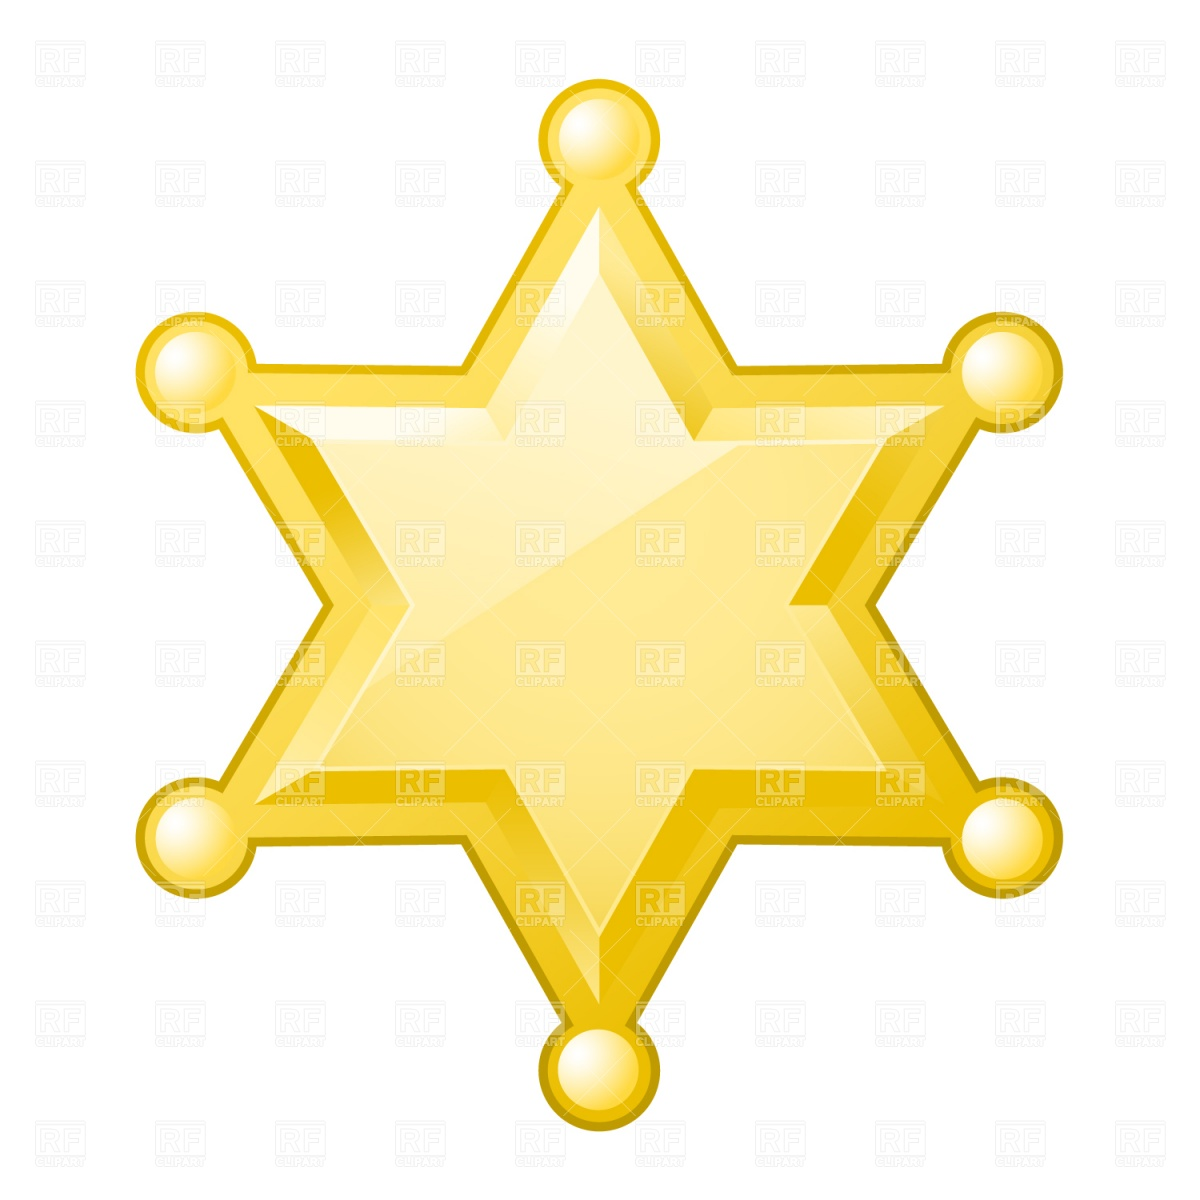 Free clipart police star svg royalty free Free clipart police star - ClipartFest svg royalty free